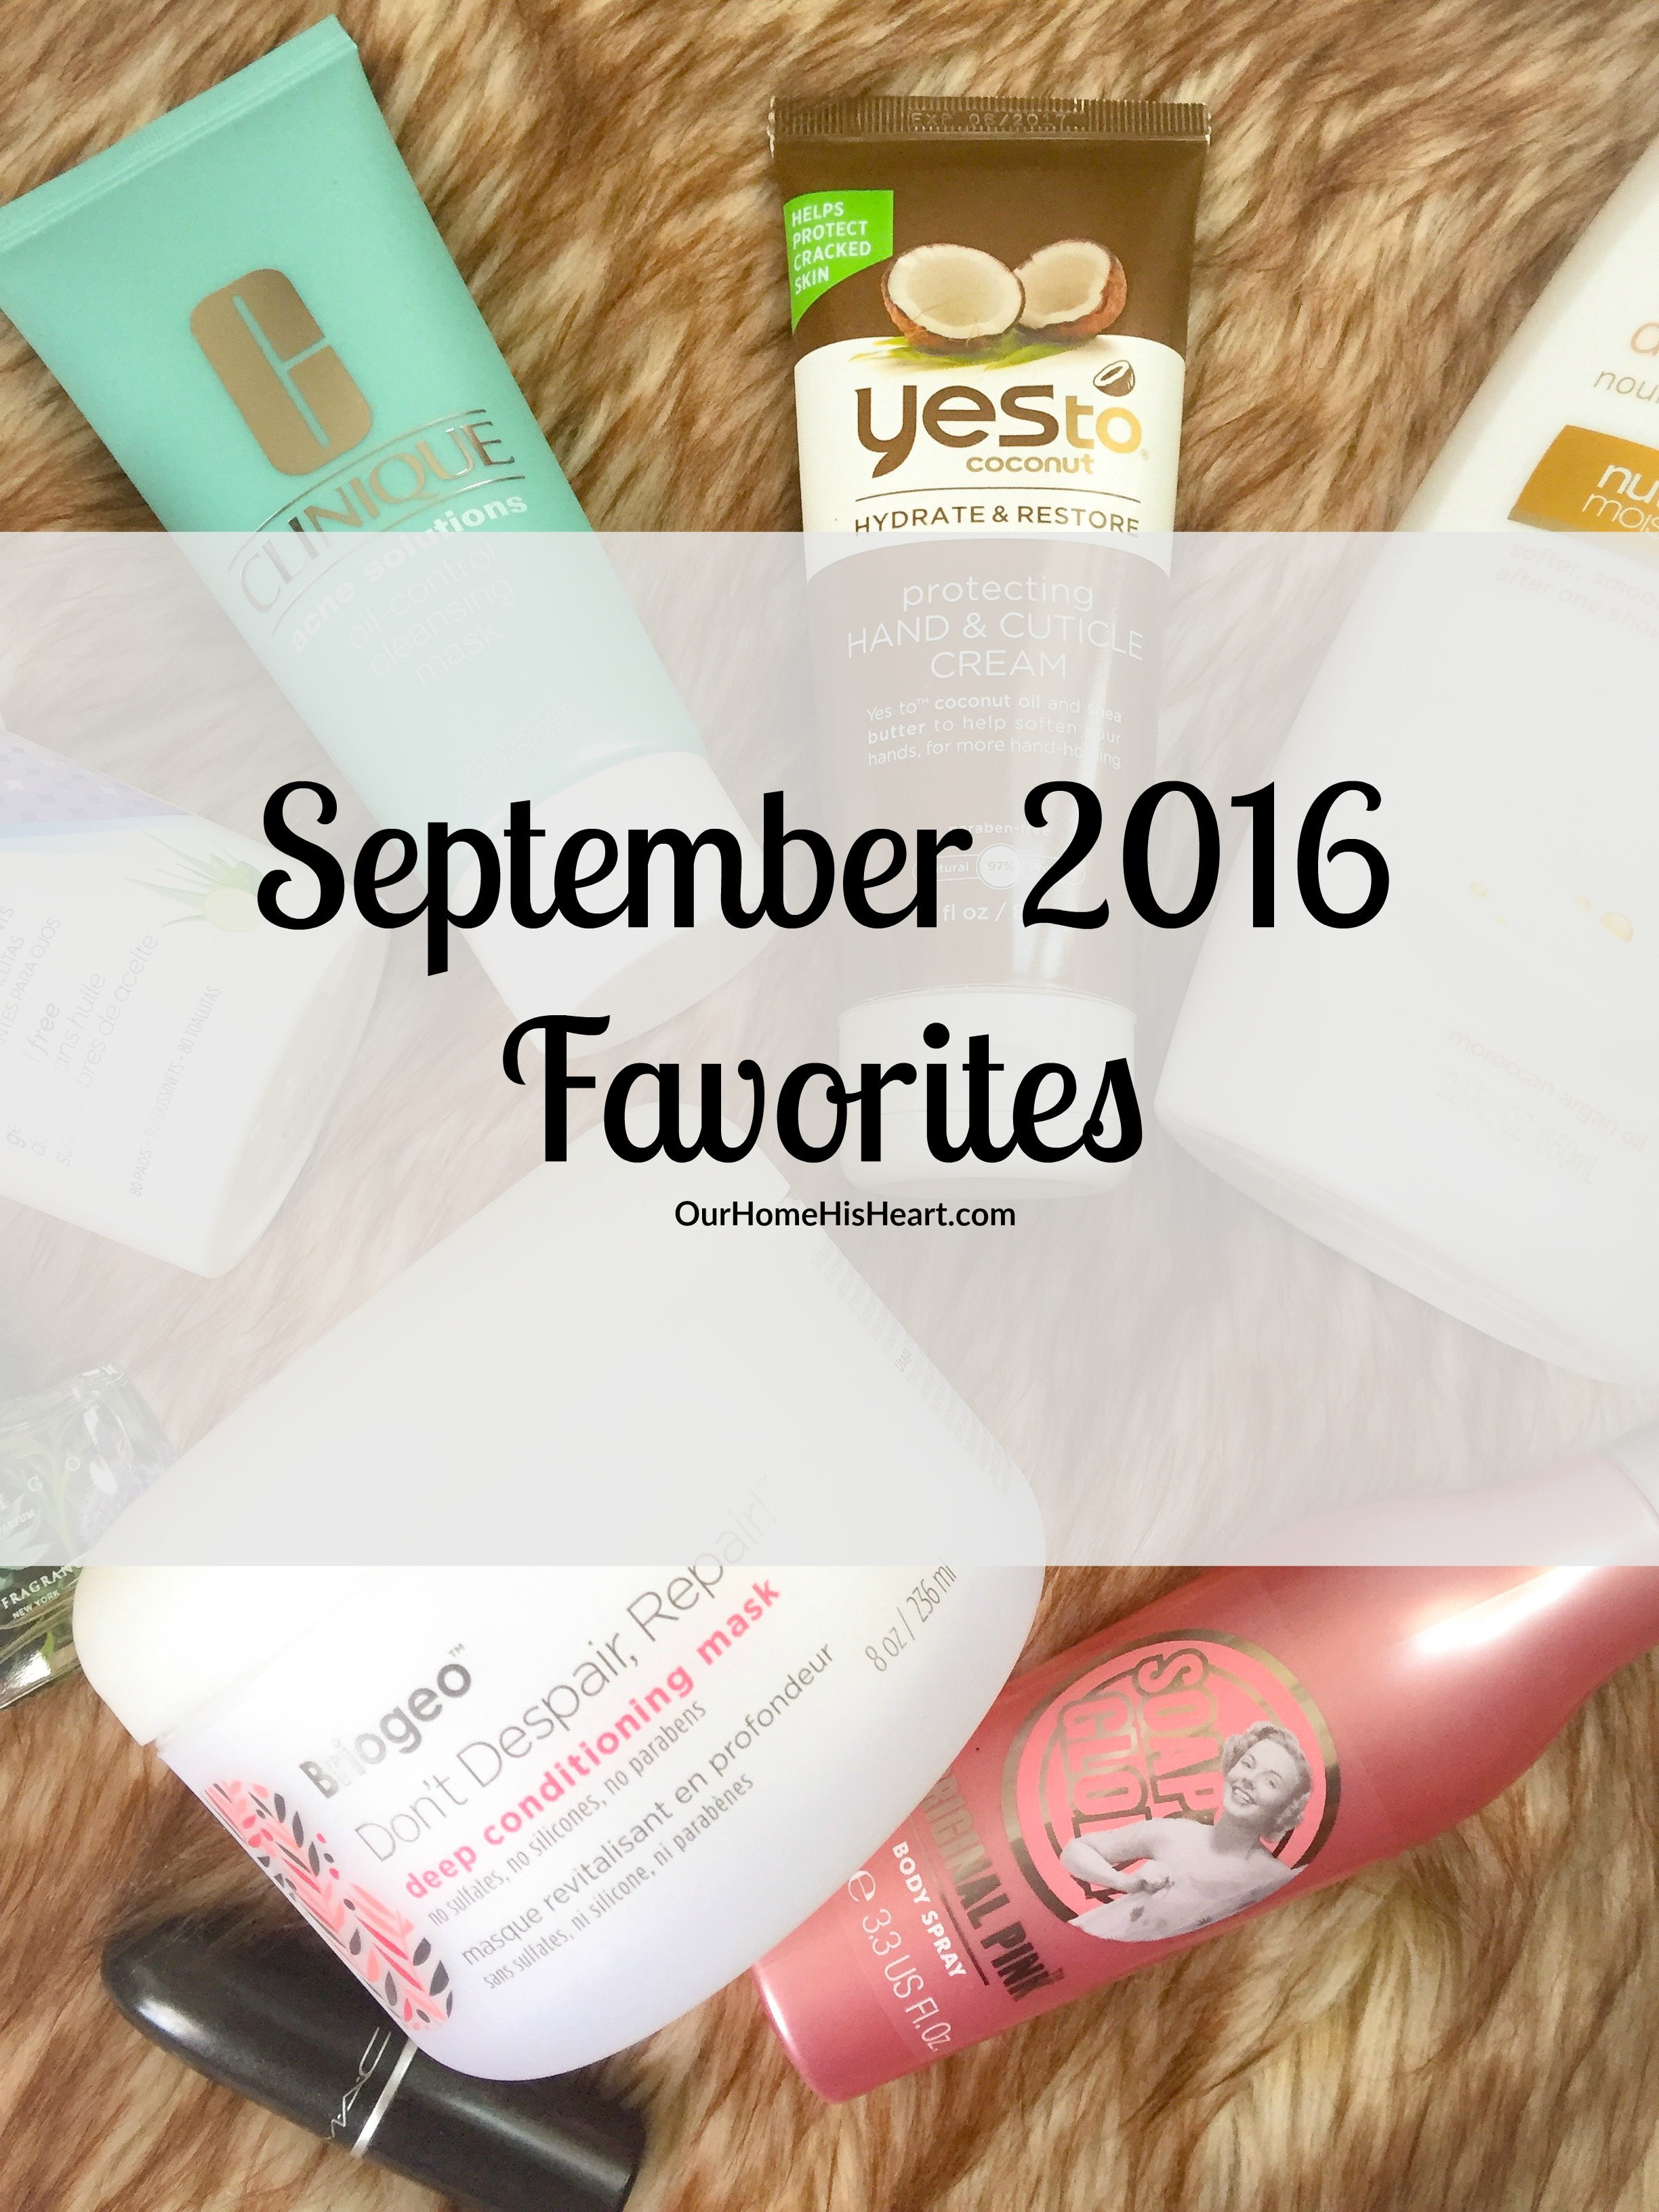 September 2016 Favorites